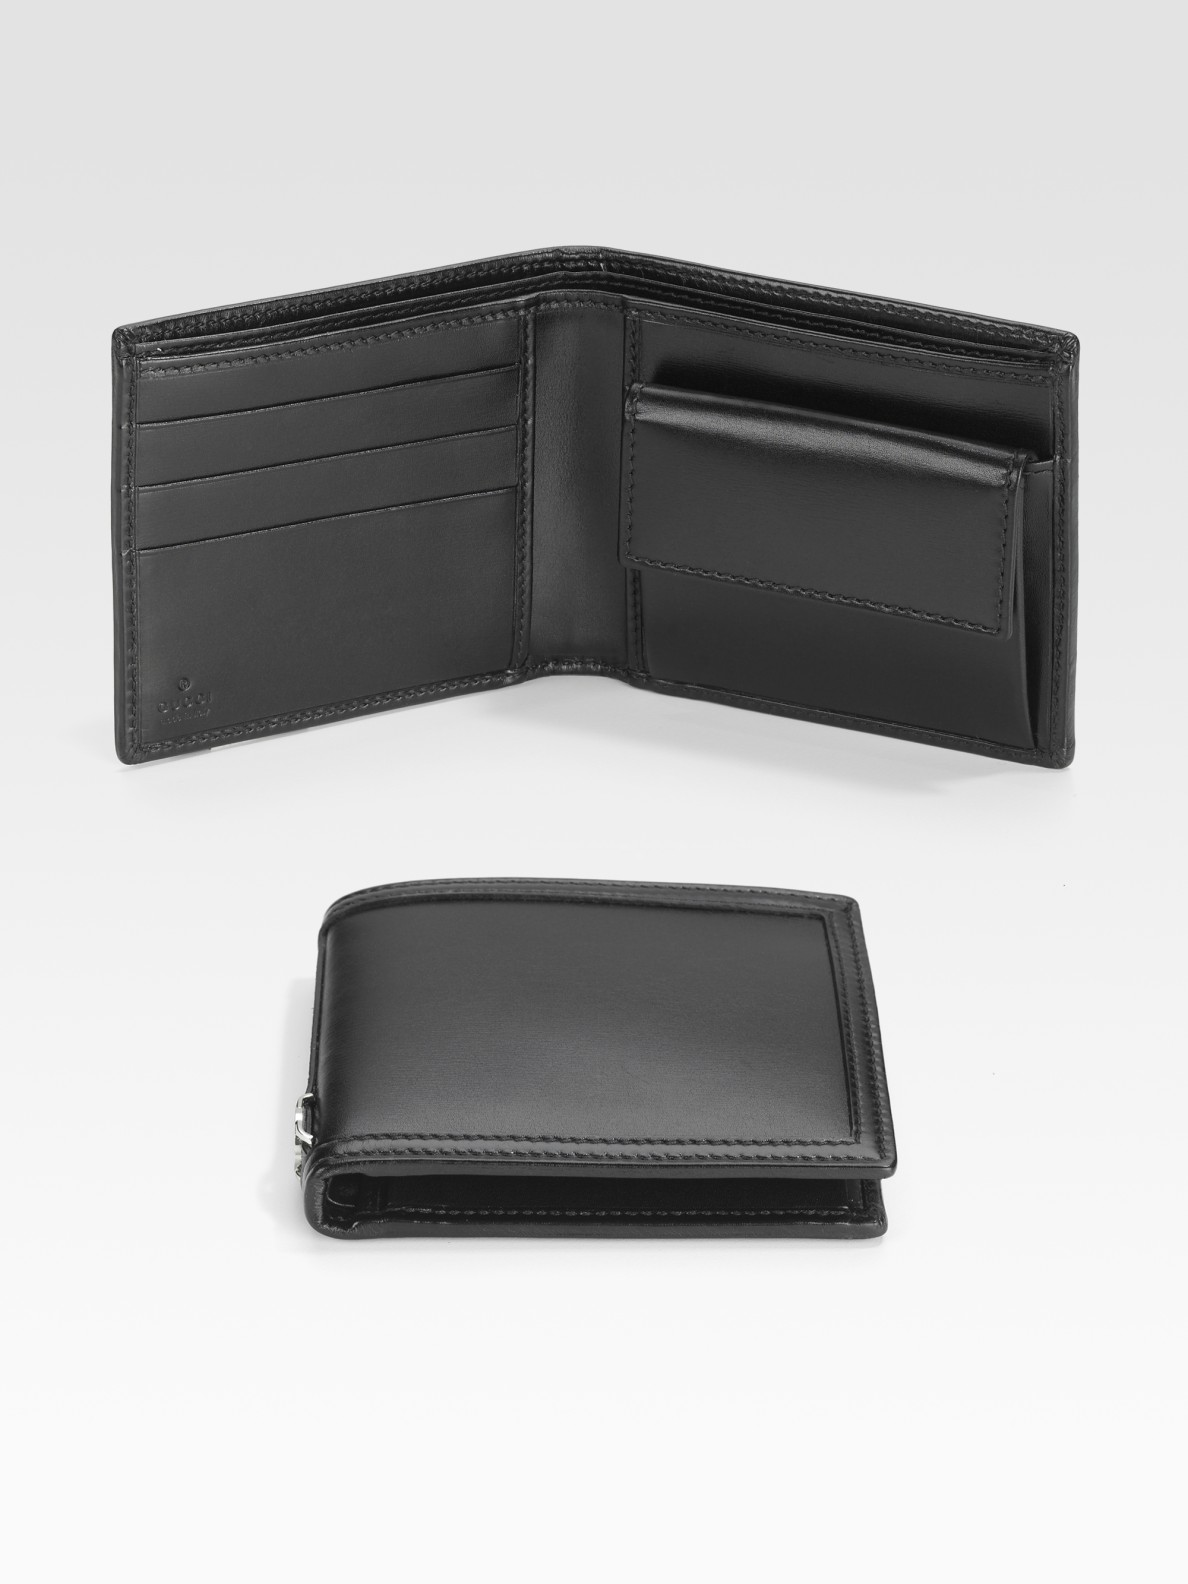 788d4d1b800a0a Mens Gucci Wallet With Coin Pocket | Stanford Center for Opportunity ...